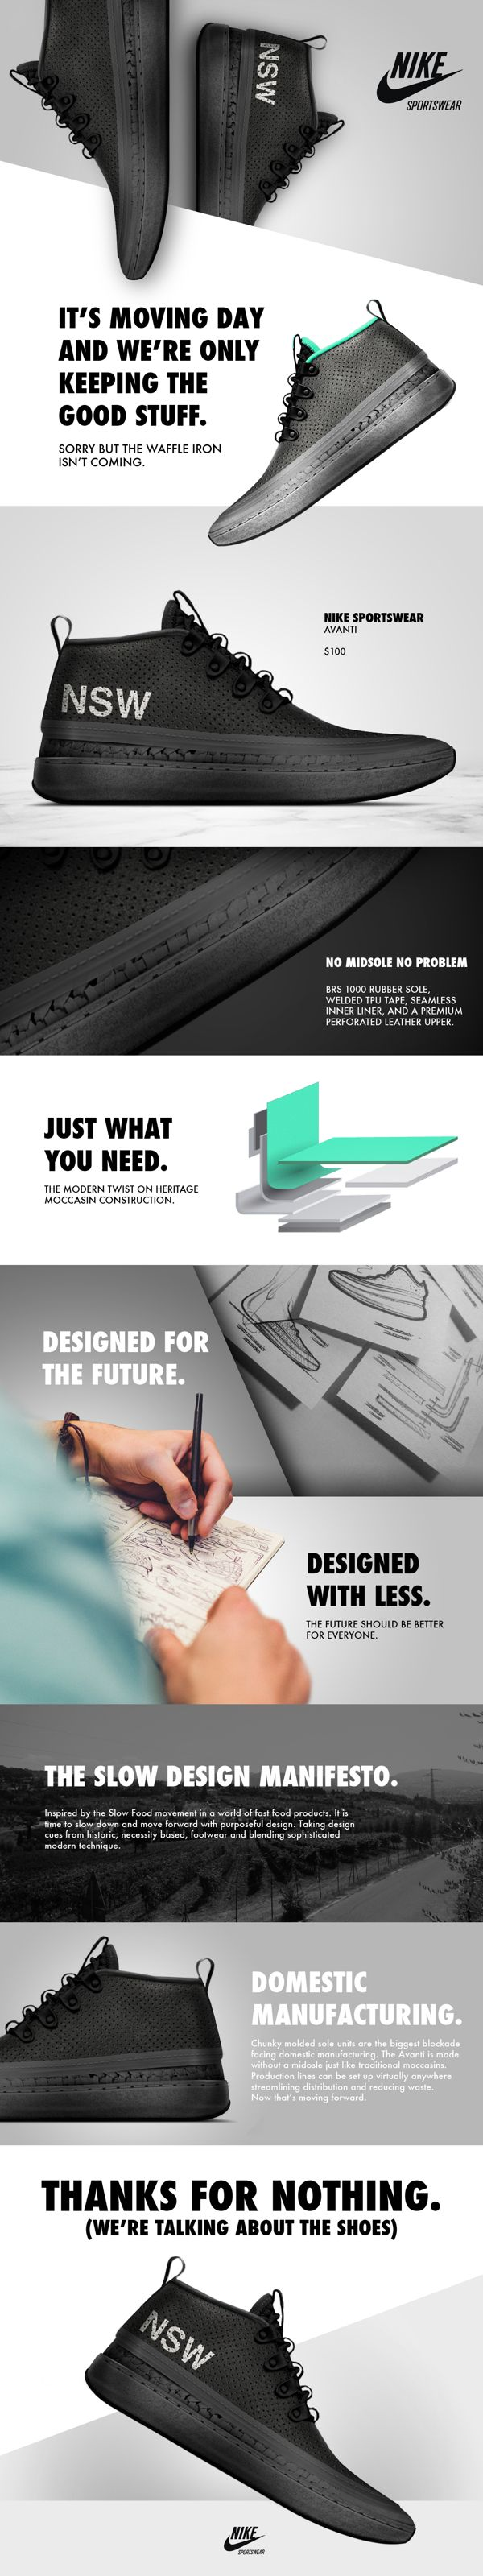 Nike AVANTI by Matt DEALMEIDA, via Behance